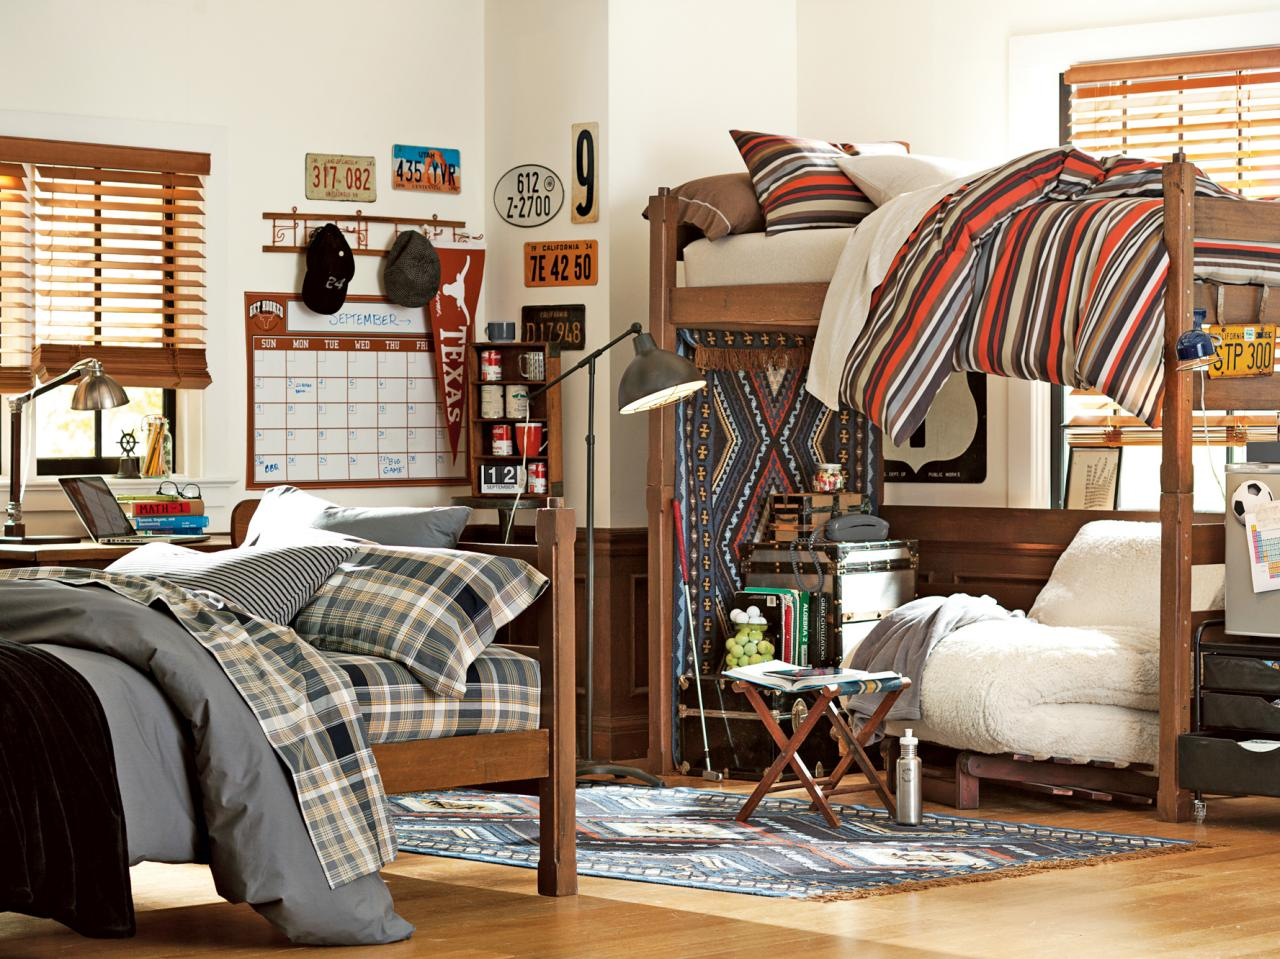 dorm room storage seating and layout checklist hgtv